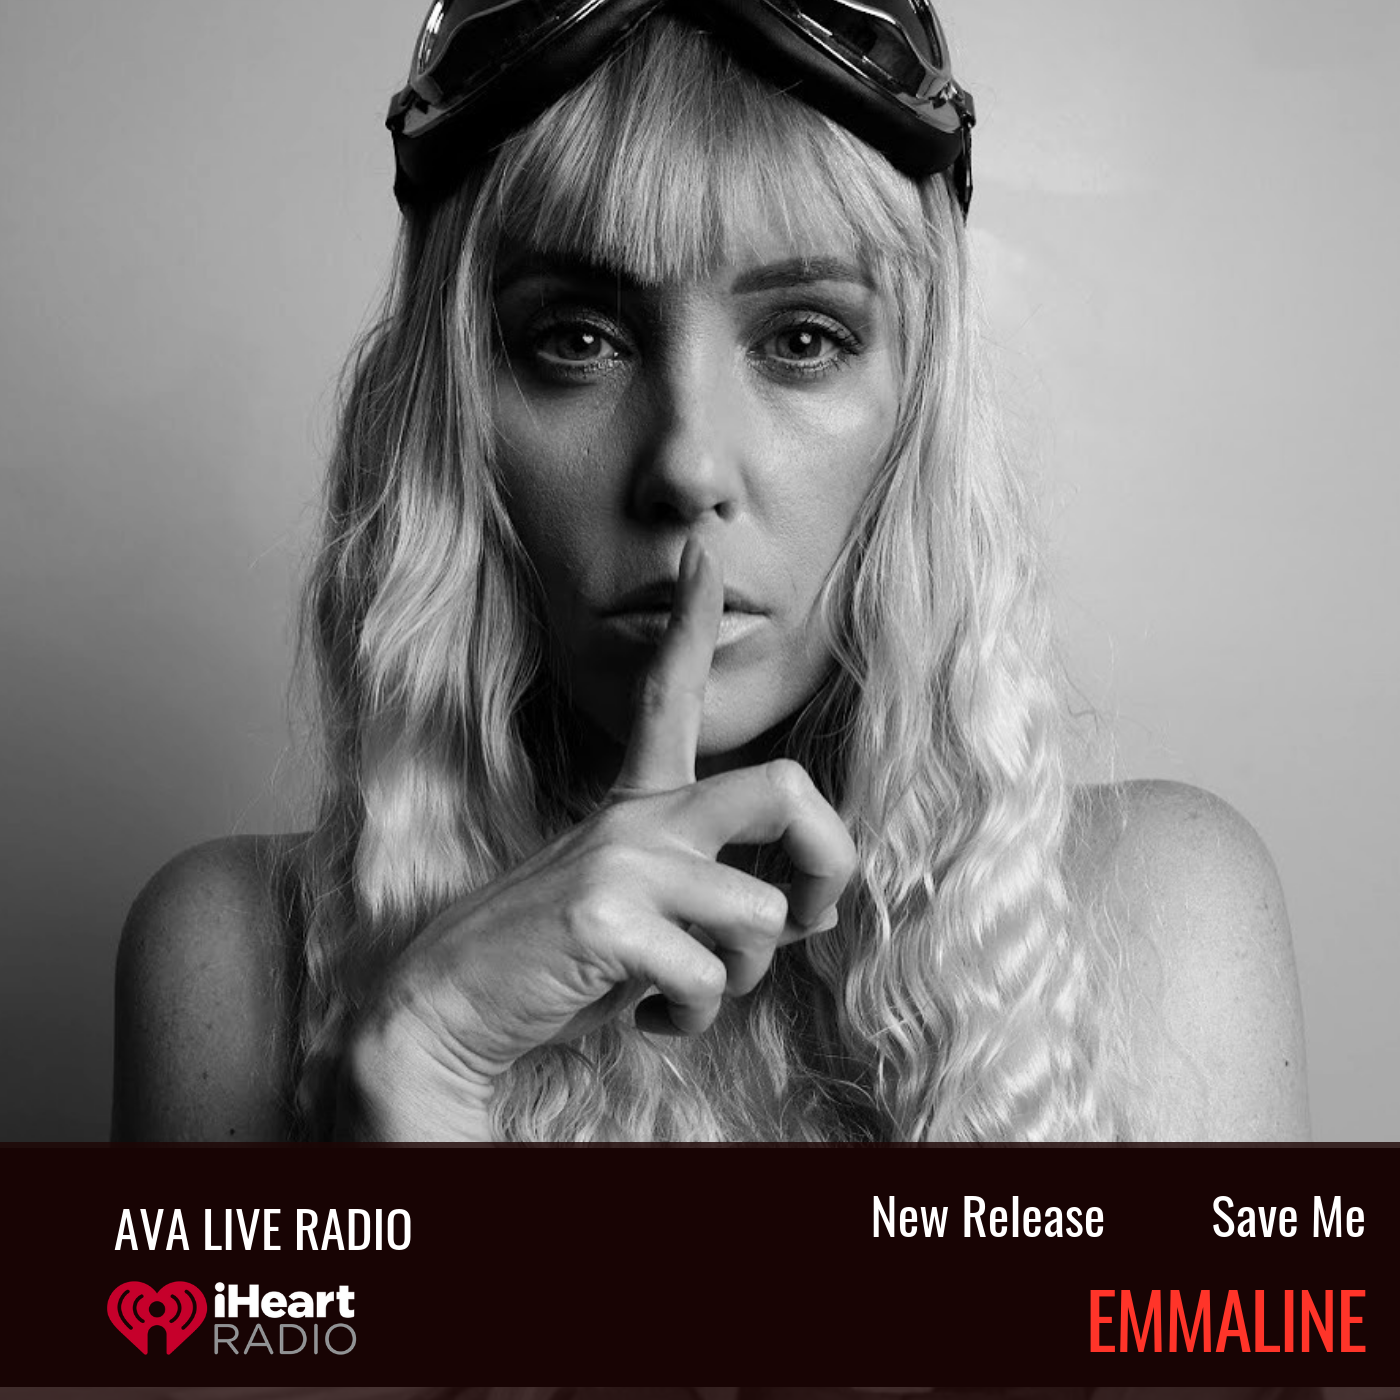 Emmaline avaliveradio.png